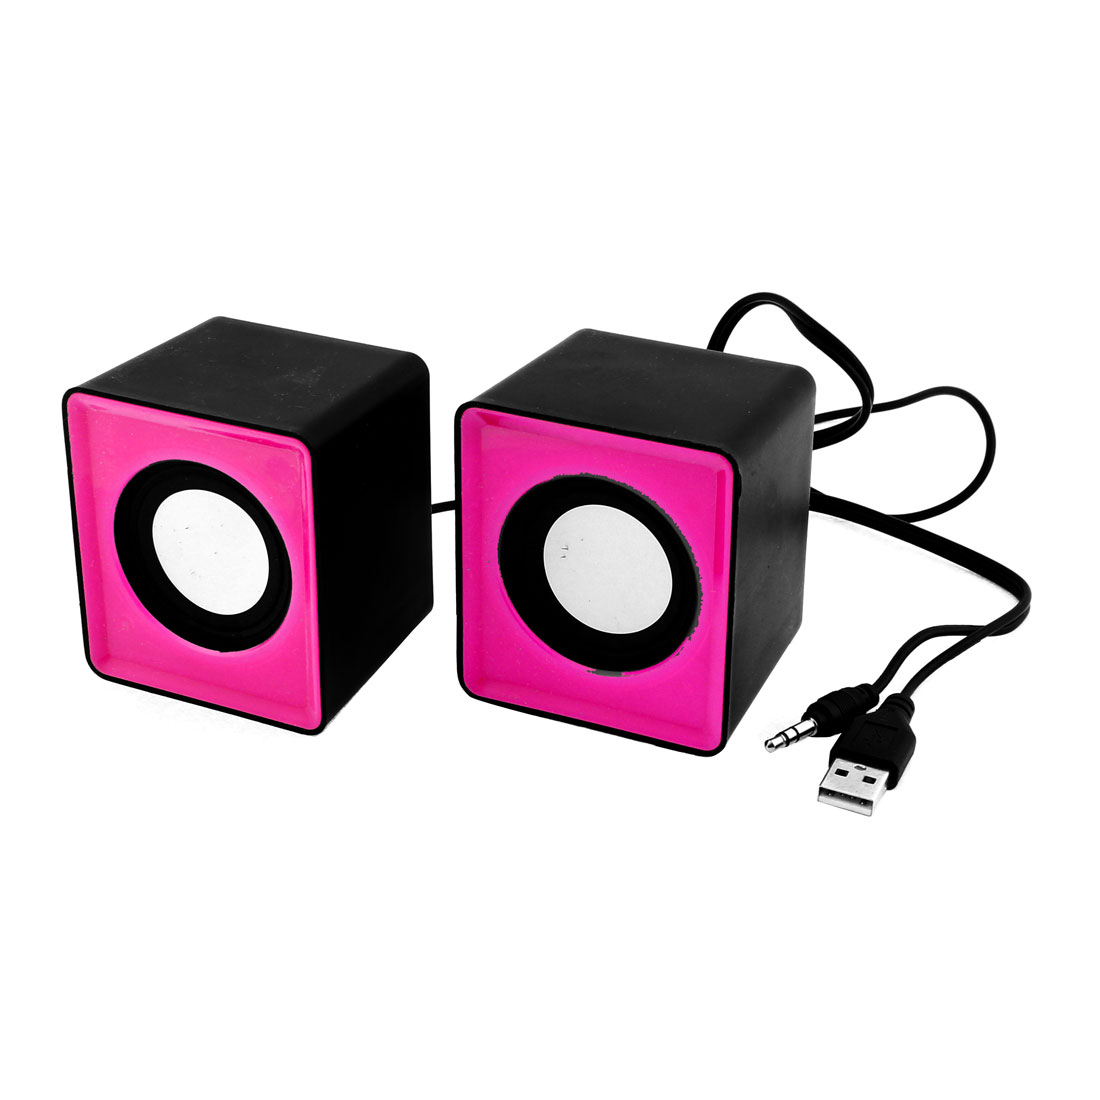 Pair USB Multimedia Mini Speaker 3.5mm Jack for Computer Desktop PC Laptop